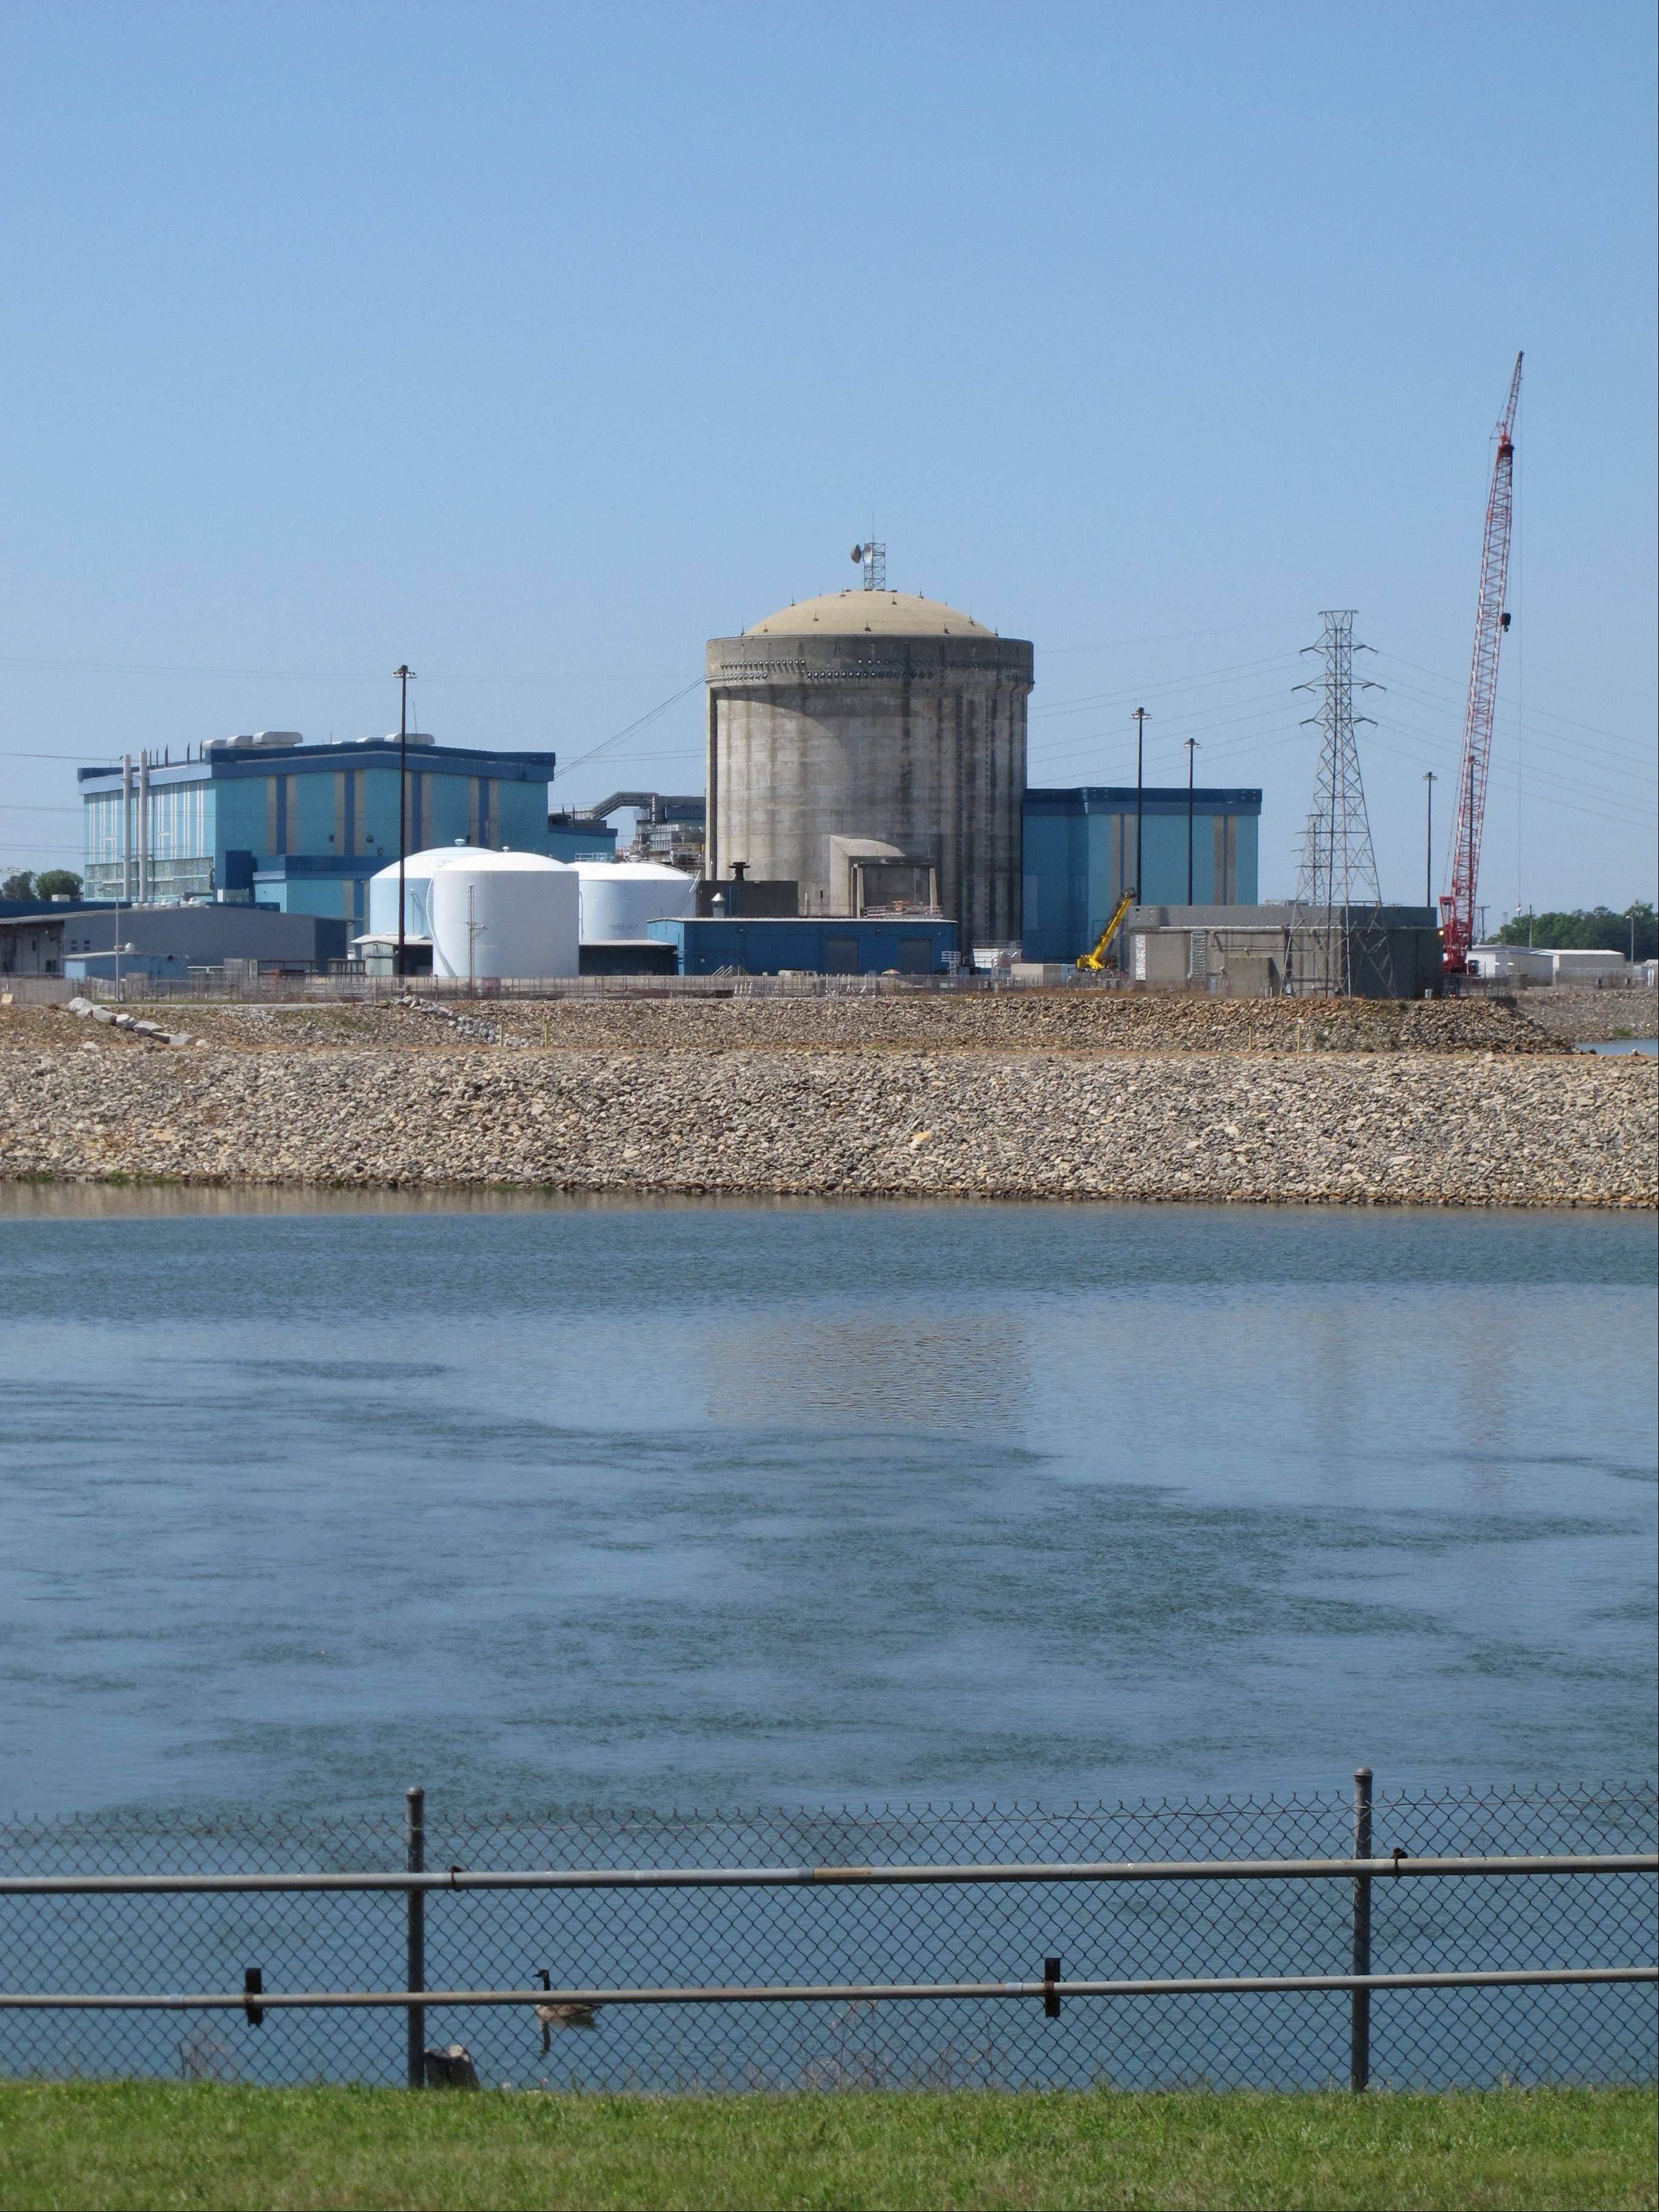 Quick rundown on nuclear power plants